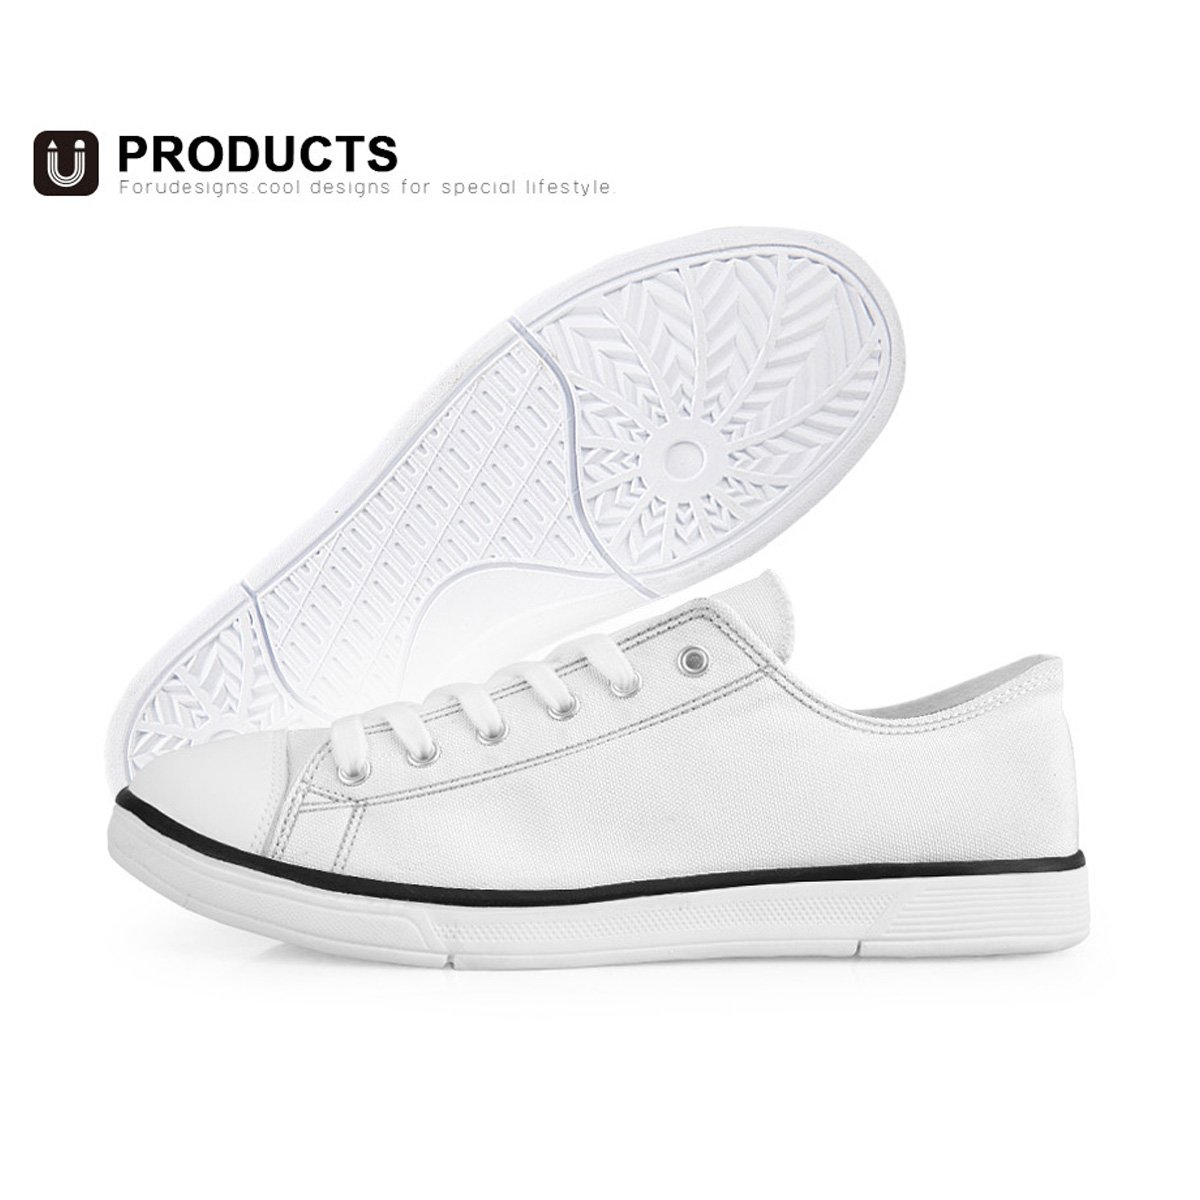 Freewander Classic Sports Canvas Sneaker Shoes for Youth